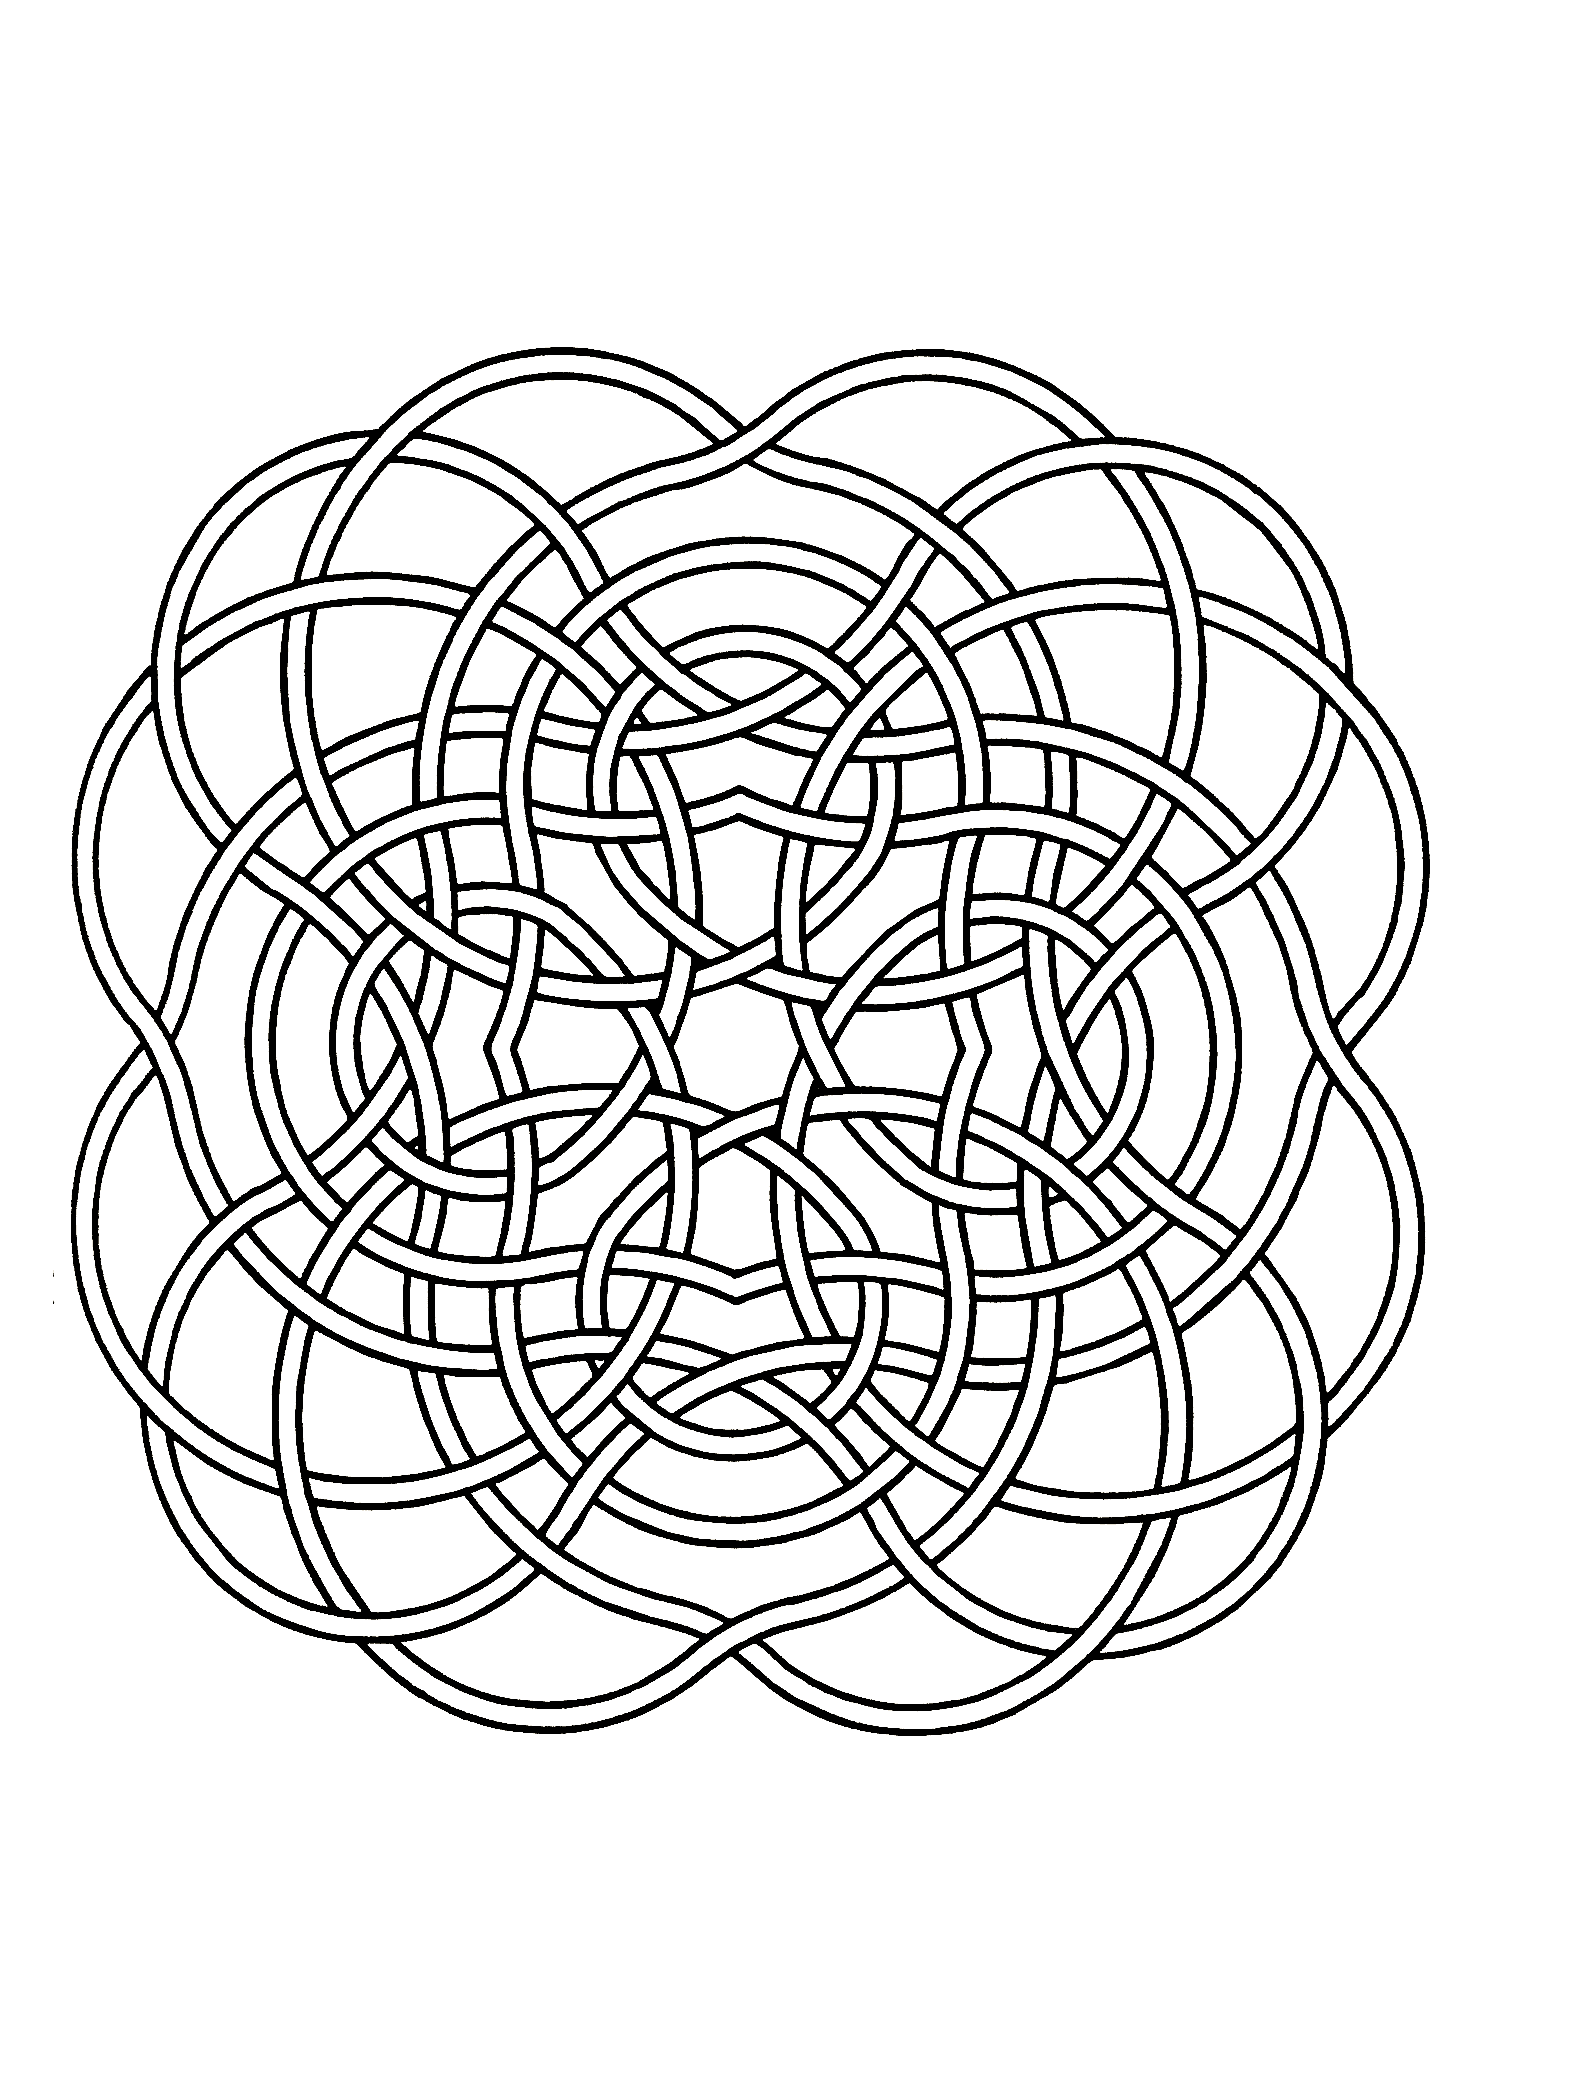 Express your soul, your passion, and the result will certainly be perfect. You must clear your mind and allow yourself to forget all your worries and responsibilities. This mandala is composed of multiple fine ribbons.